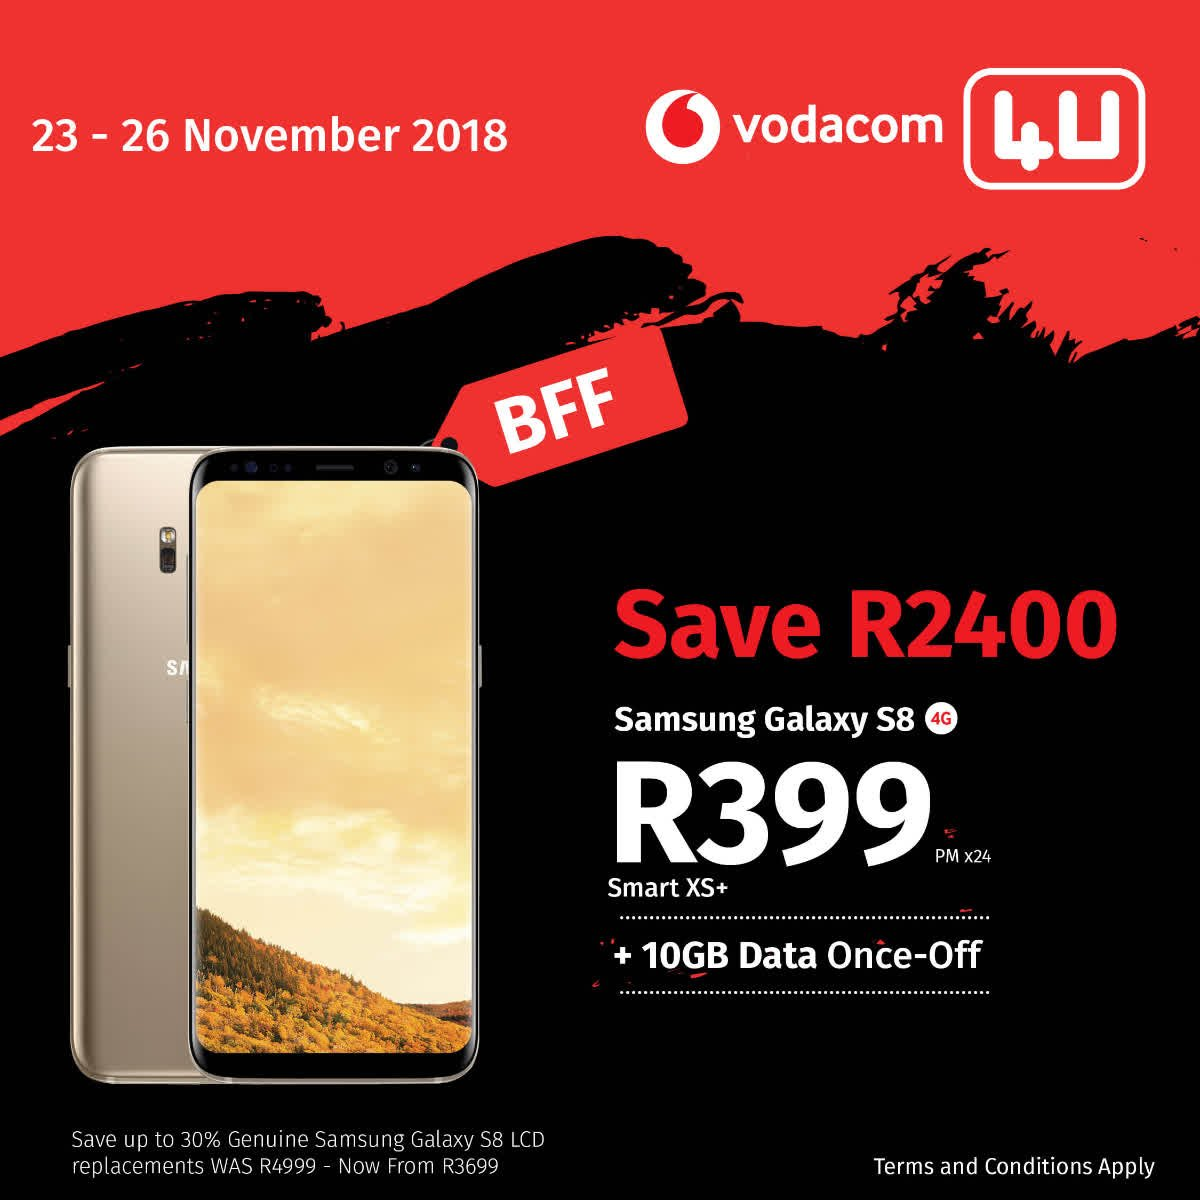 Vodacom 4u On Twitter B L A C K F E S T I V A L F R I D A Y Black Friday Your Best Friend Us Too It S Going To Be A Festival Bff Specials 4 U Valid This Weekend Only Bff Connected Https T Co Gy7qielhod